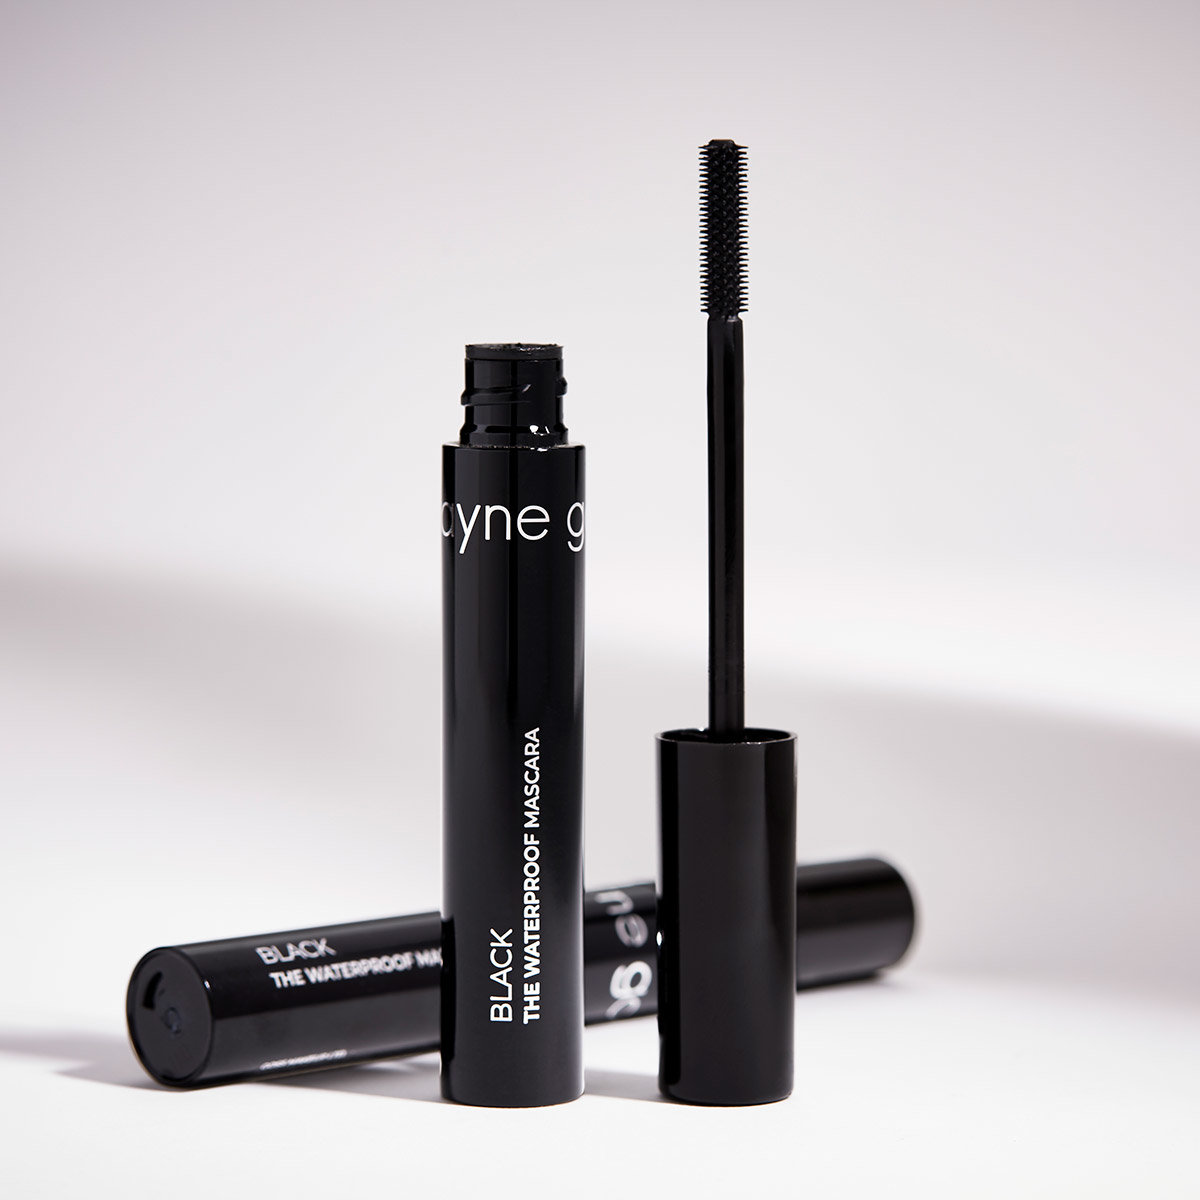 Alternate product image for The Waterproof Mascara shown with the description.